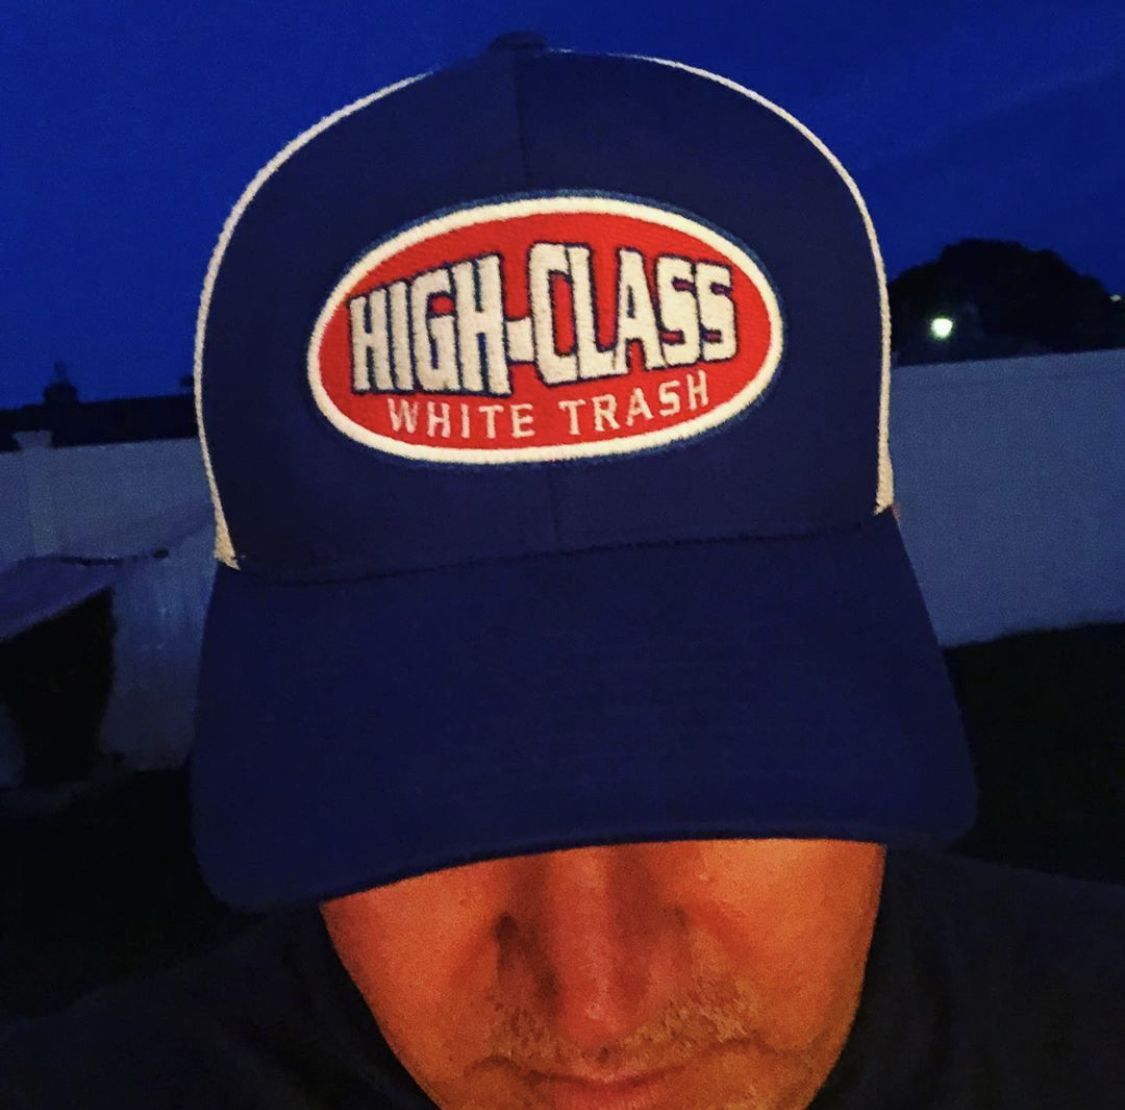 High Class White Trash Trucker Hat. New High Class White Trash snap back Trucker hats are in the works. These hats are going to have a custom woven patch and be of highest quality. #highclasswhitetrash #clothing #apparel #truckerhats #hats #highclasswhitetrashingclothing #redneck #rednecks #rebel #country